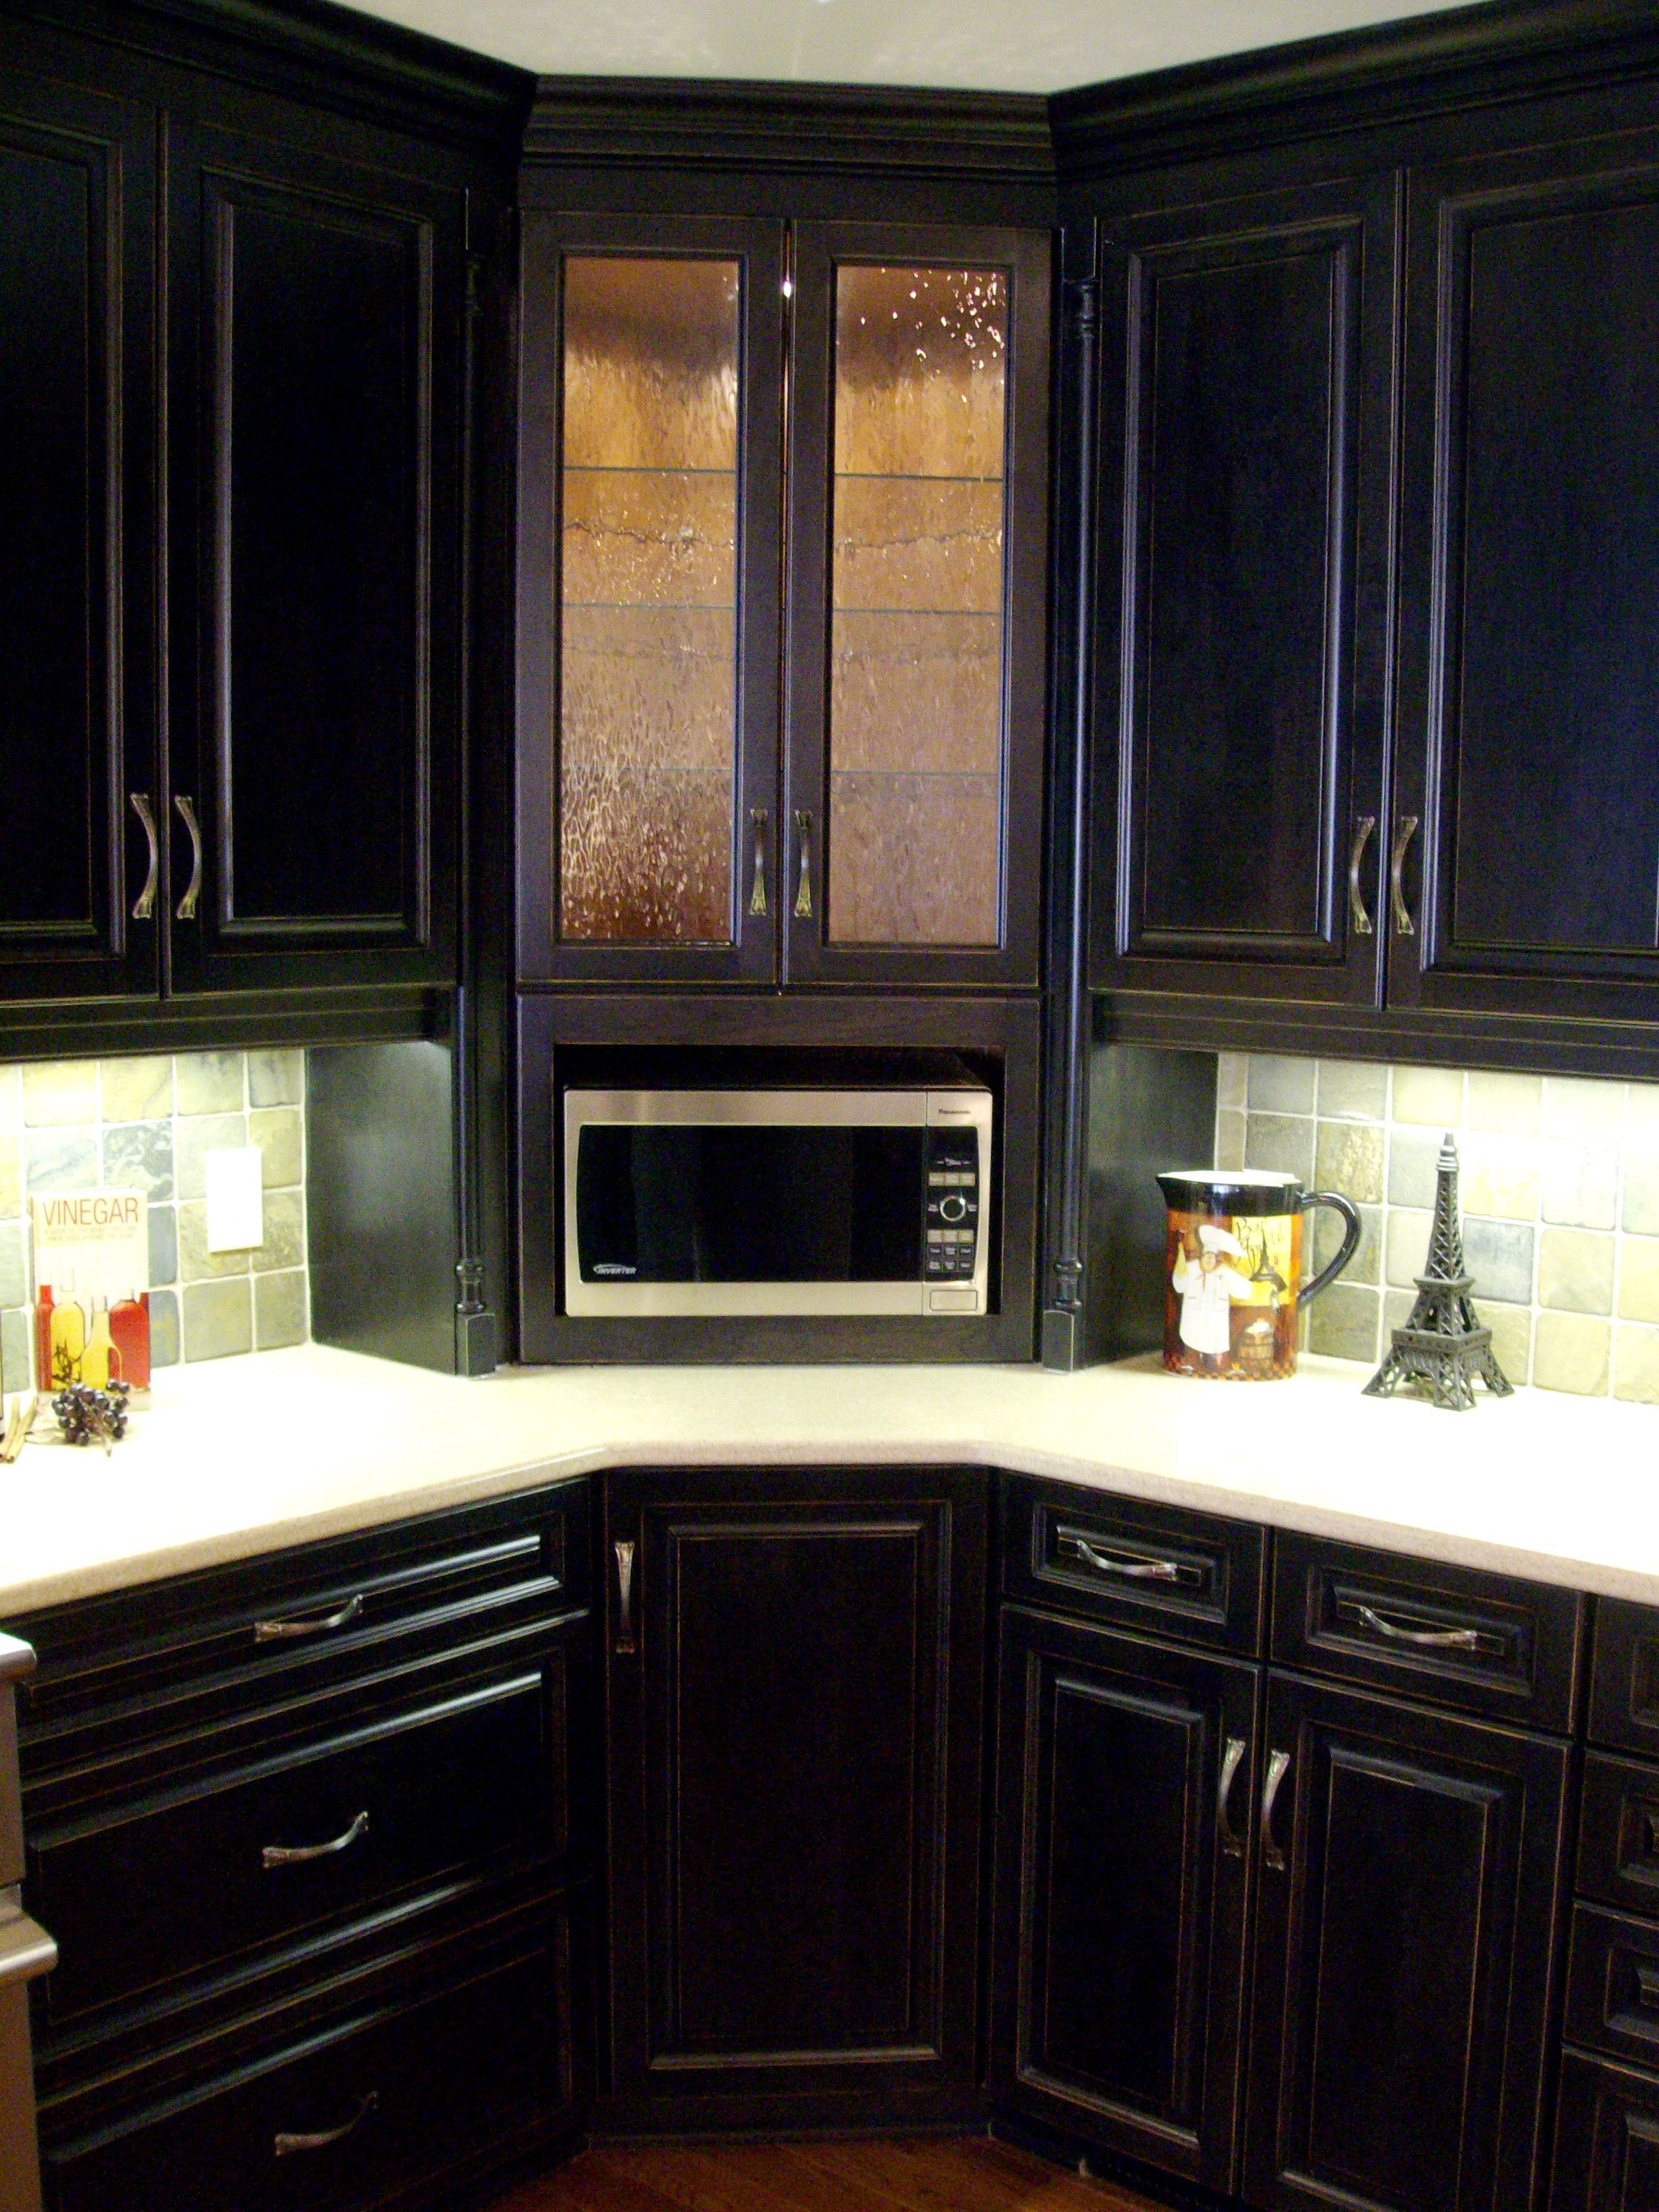 New Microwave Shelf Cabinet Built In Microwave Cabinet New Kitchen Cabinets Microwave Cabinet